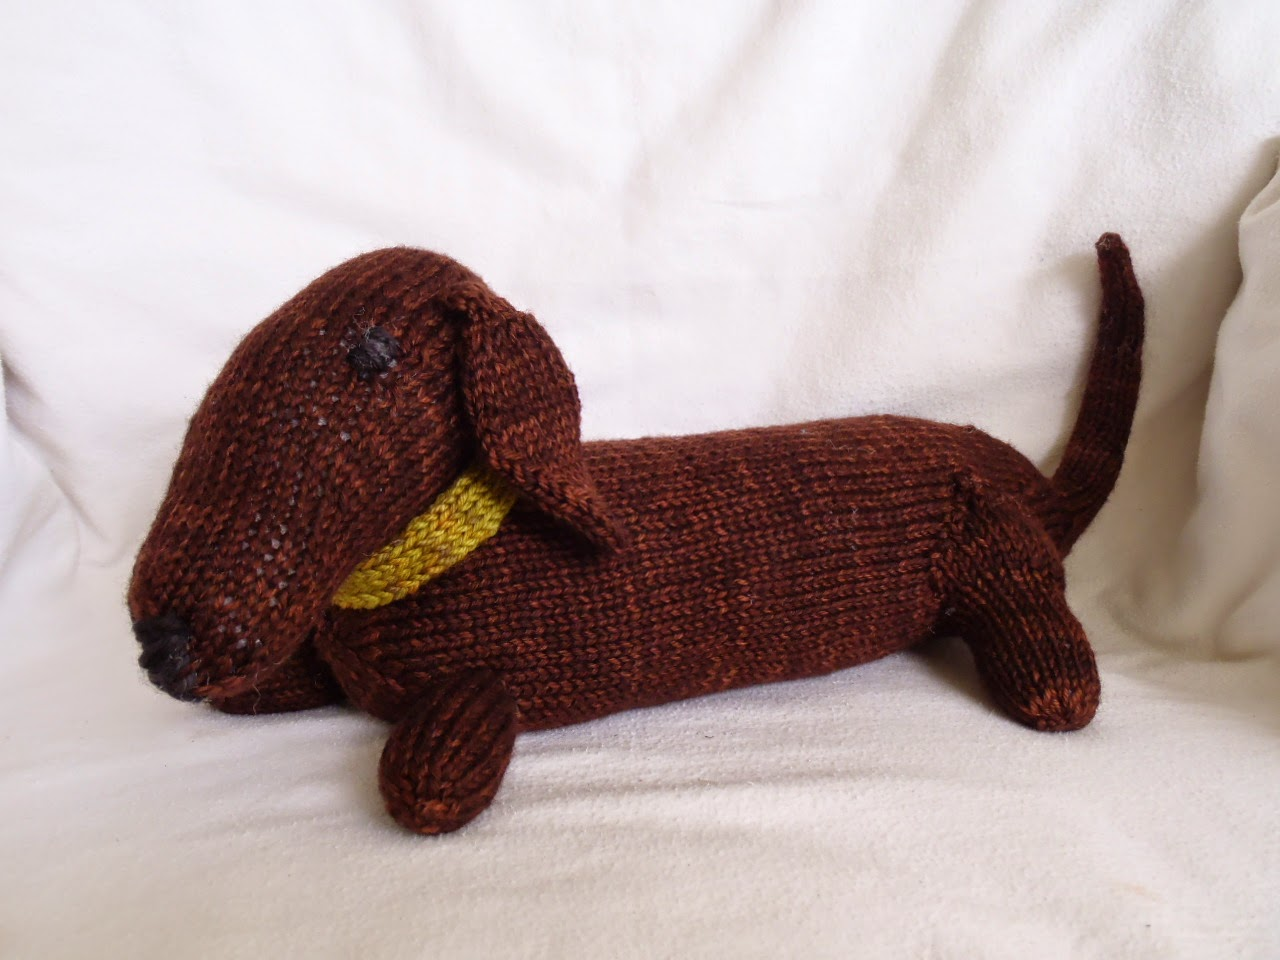 Knitted Dachshund Pattern : Stanas Critters Etc.: Knitting Pattern for Jelly, the ...